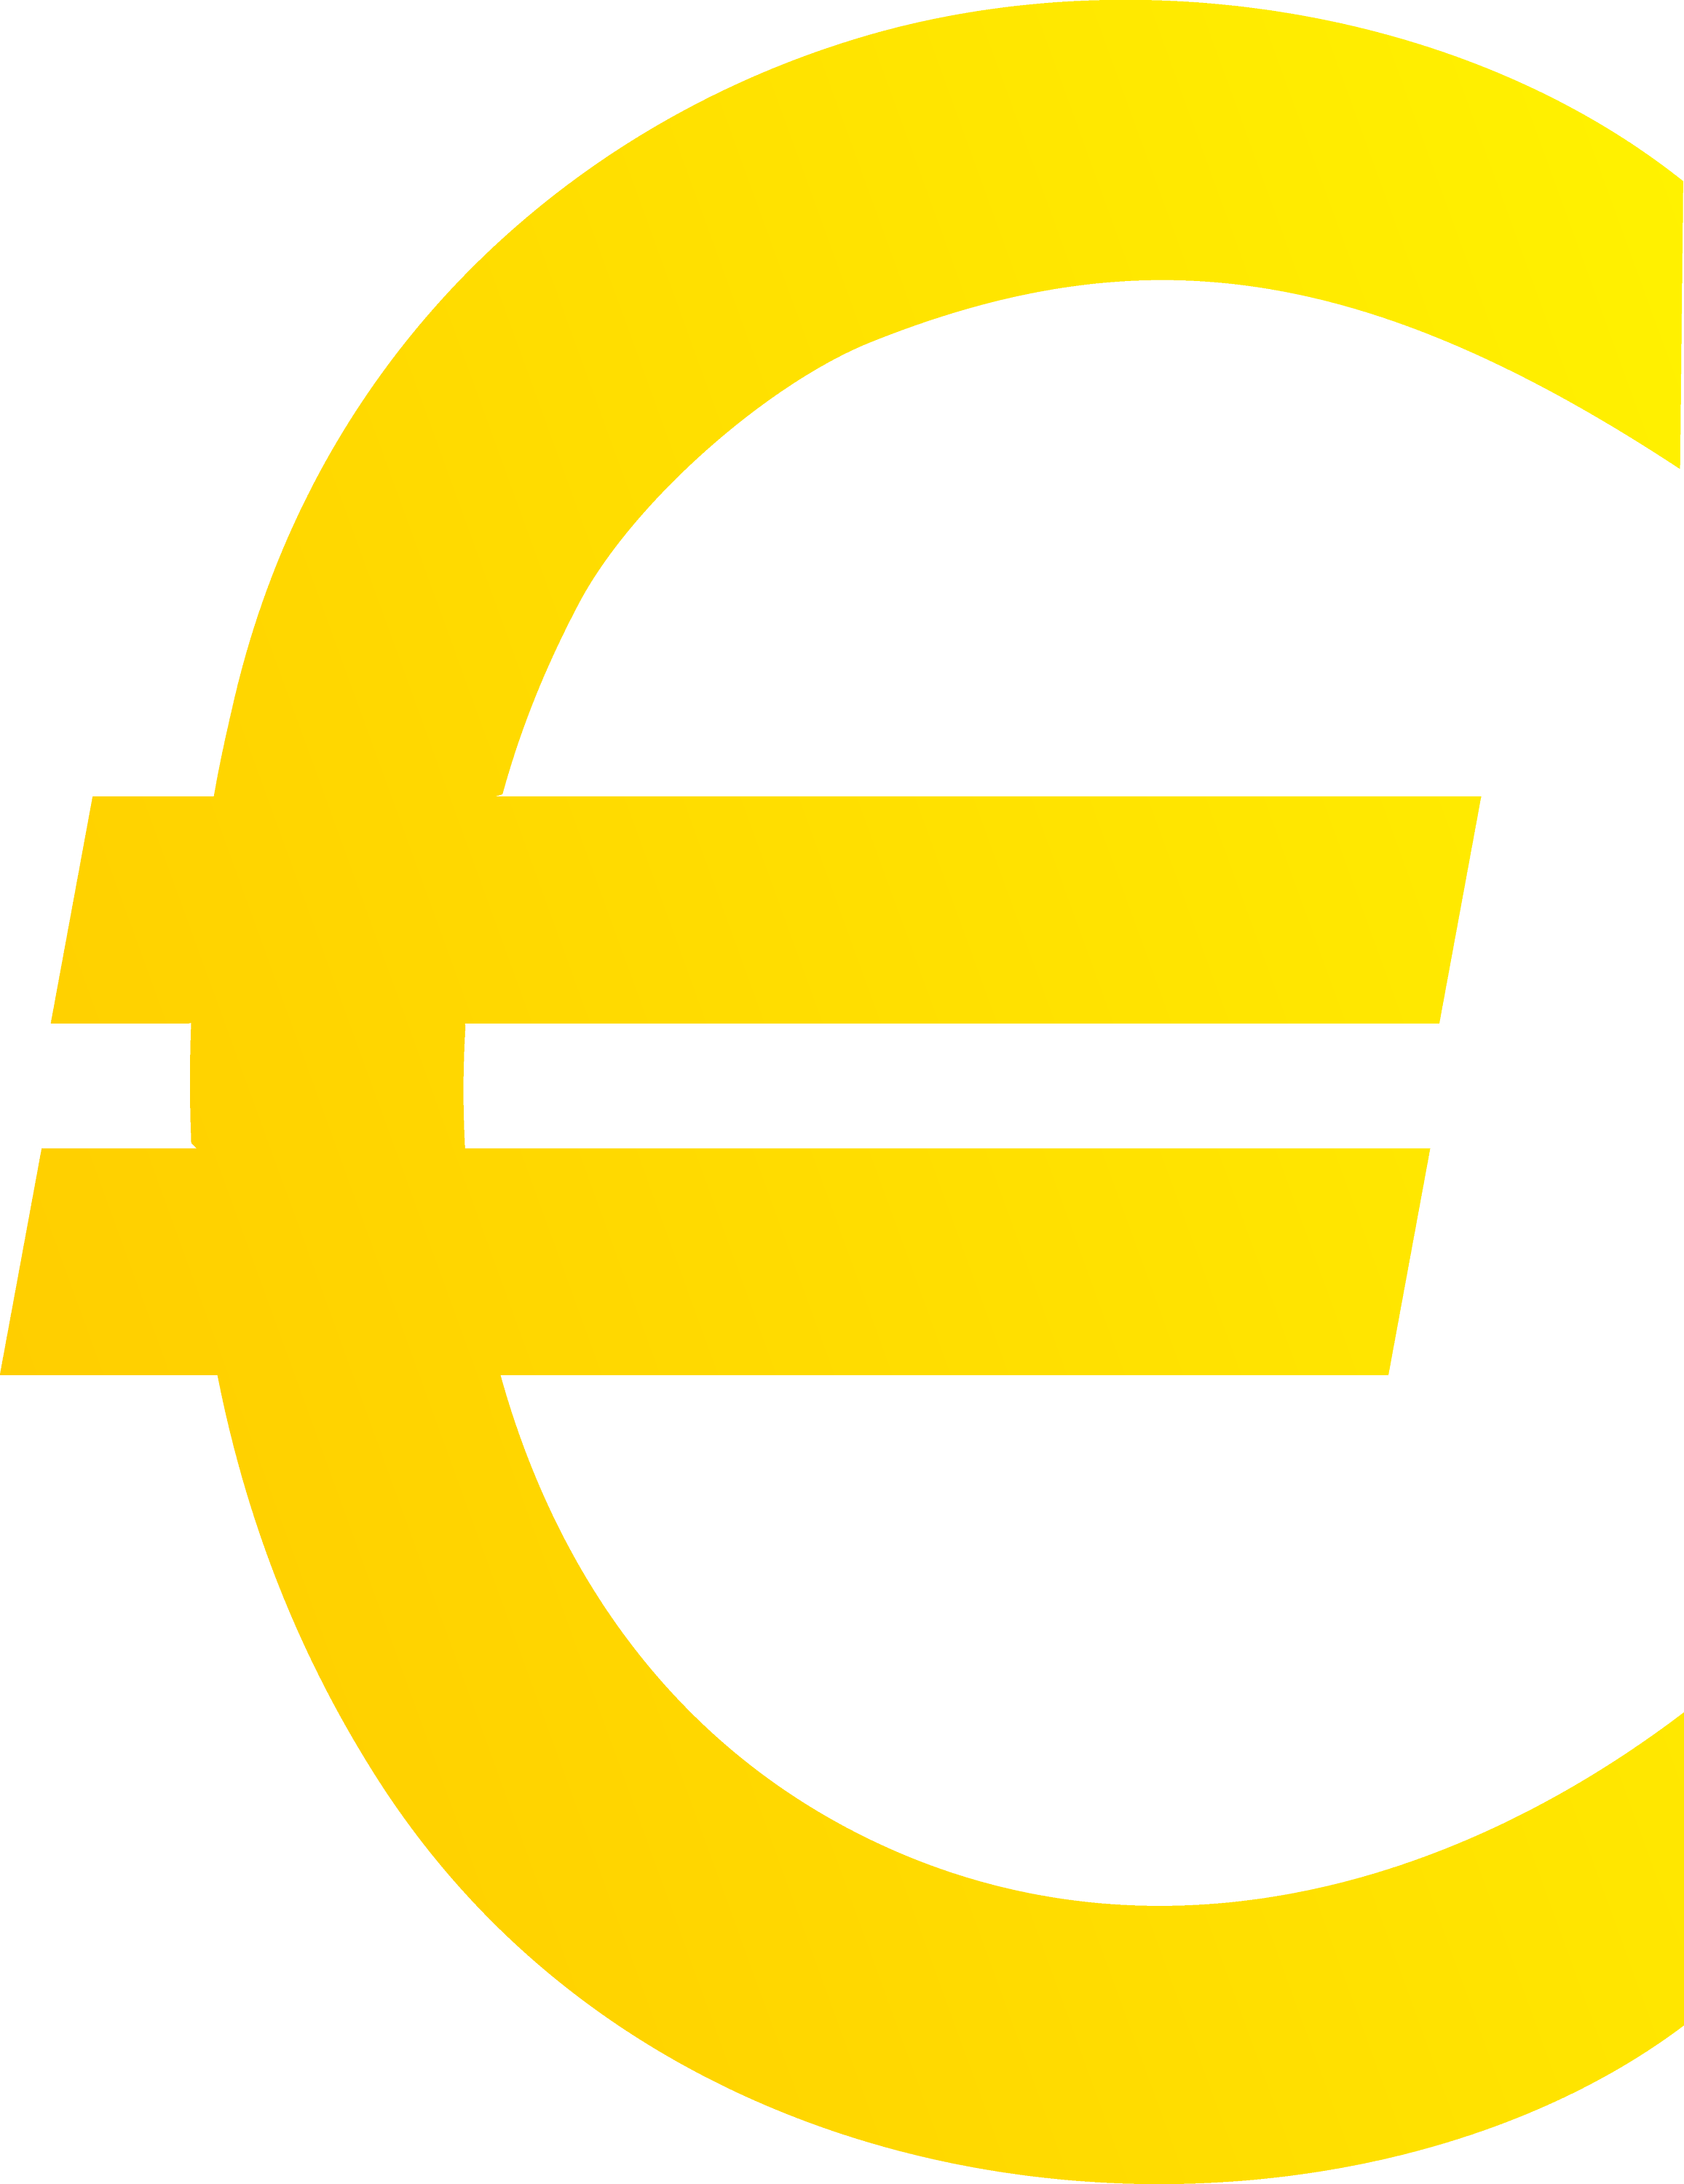 Golden Euro Currency Symbol Free Clip Art